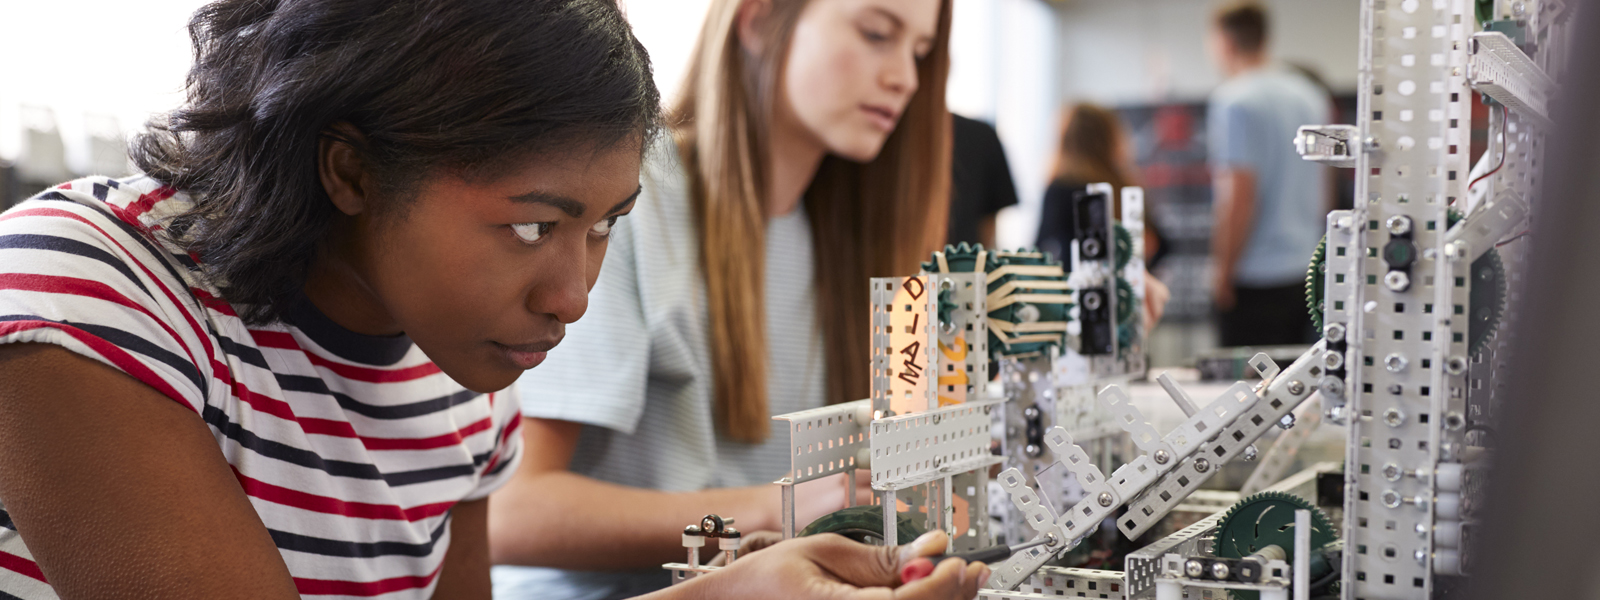 girl working closely with robotics